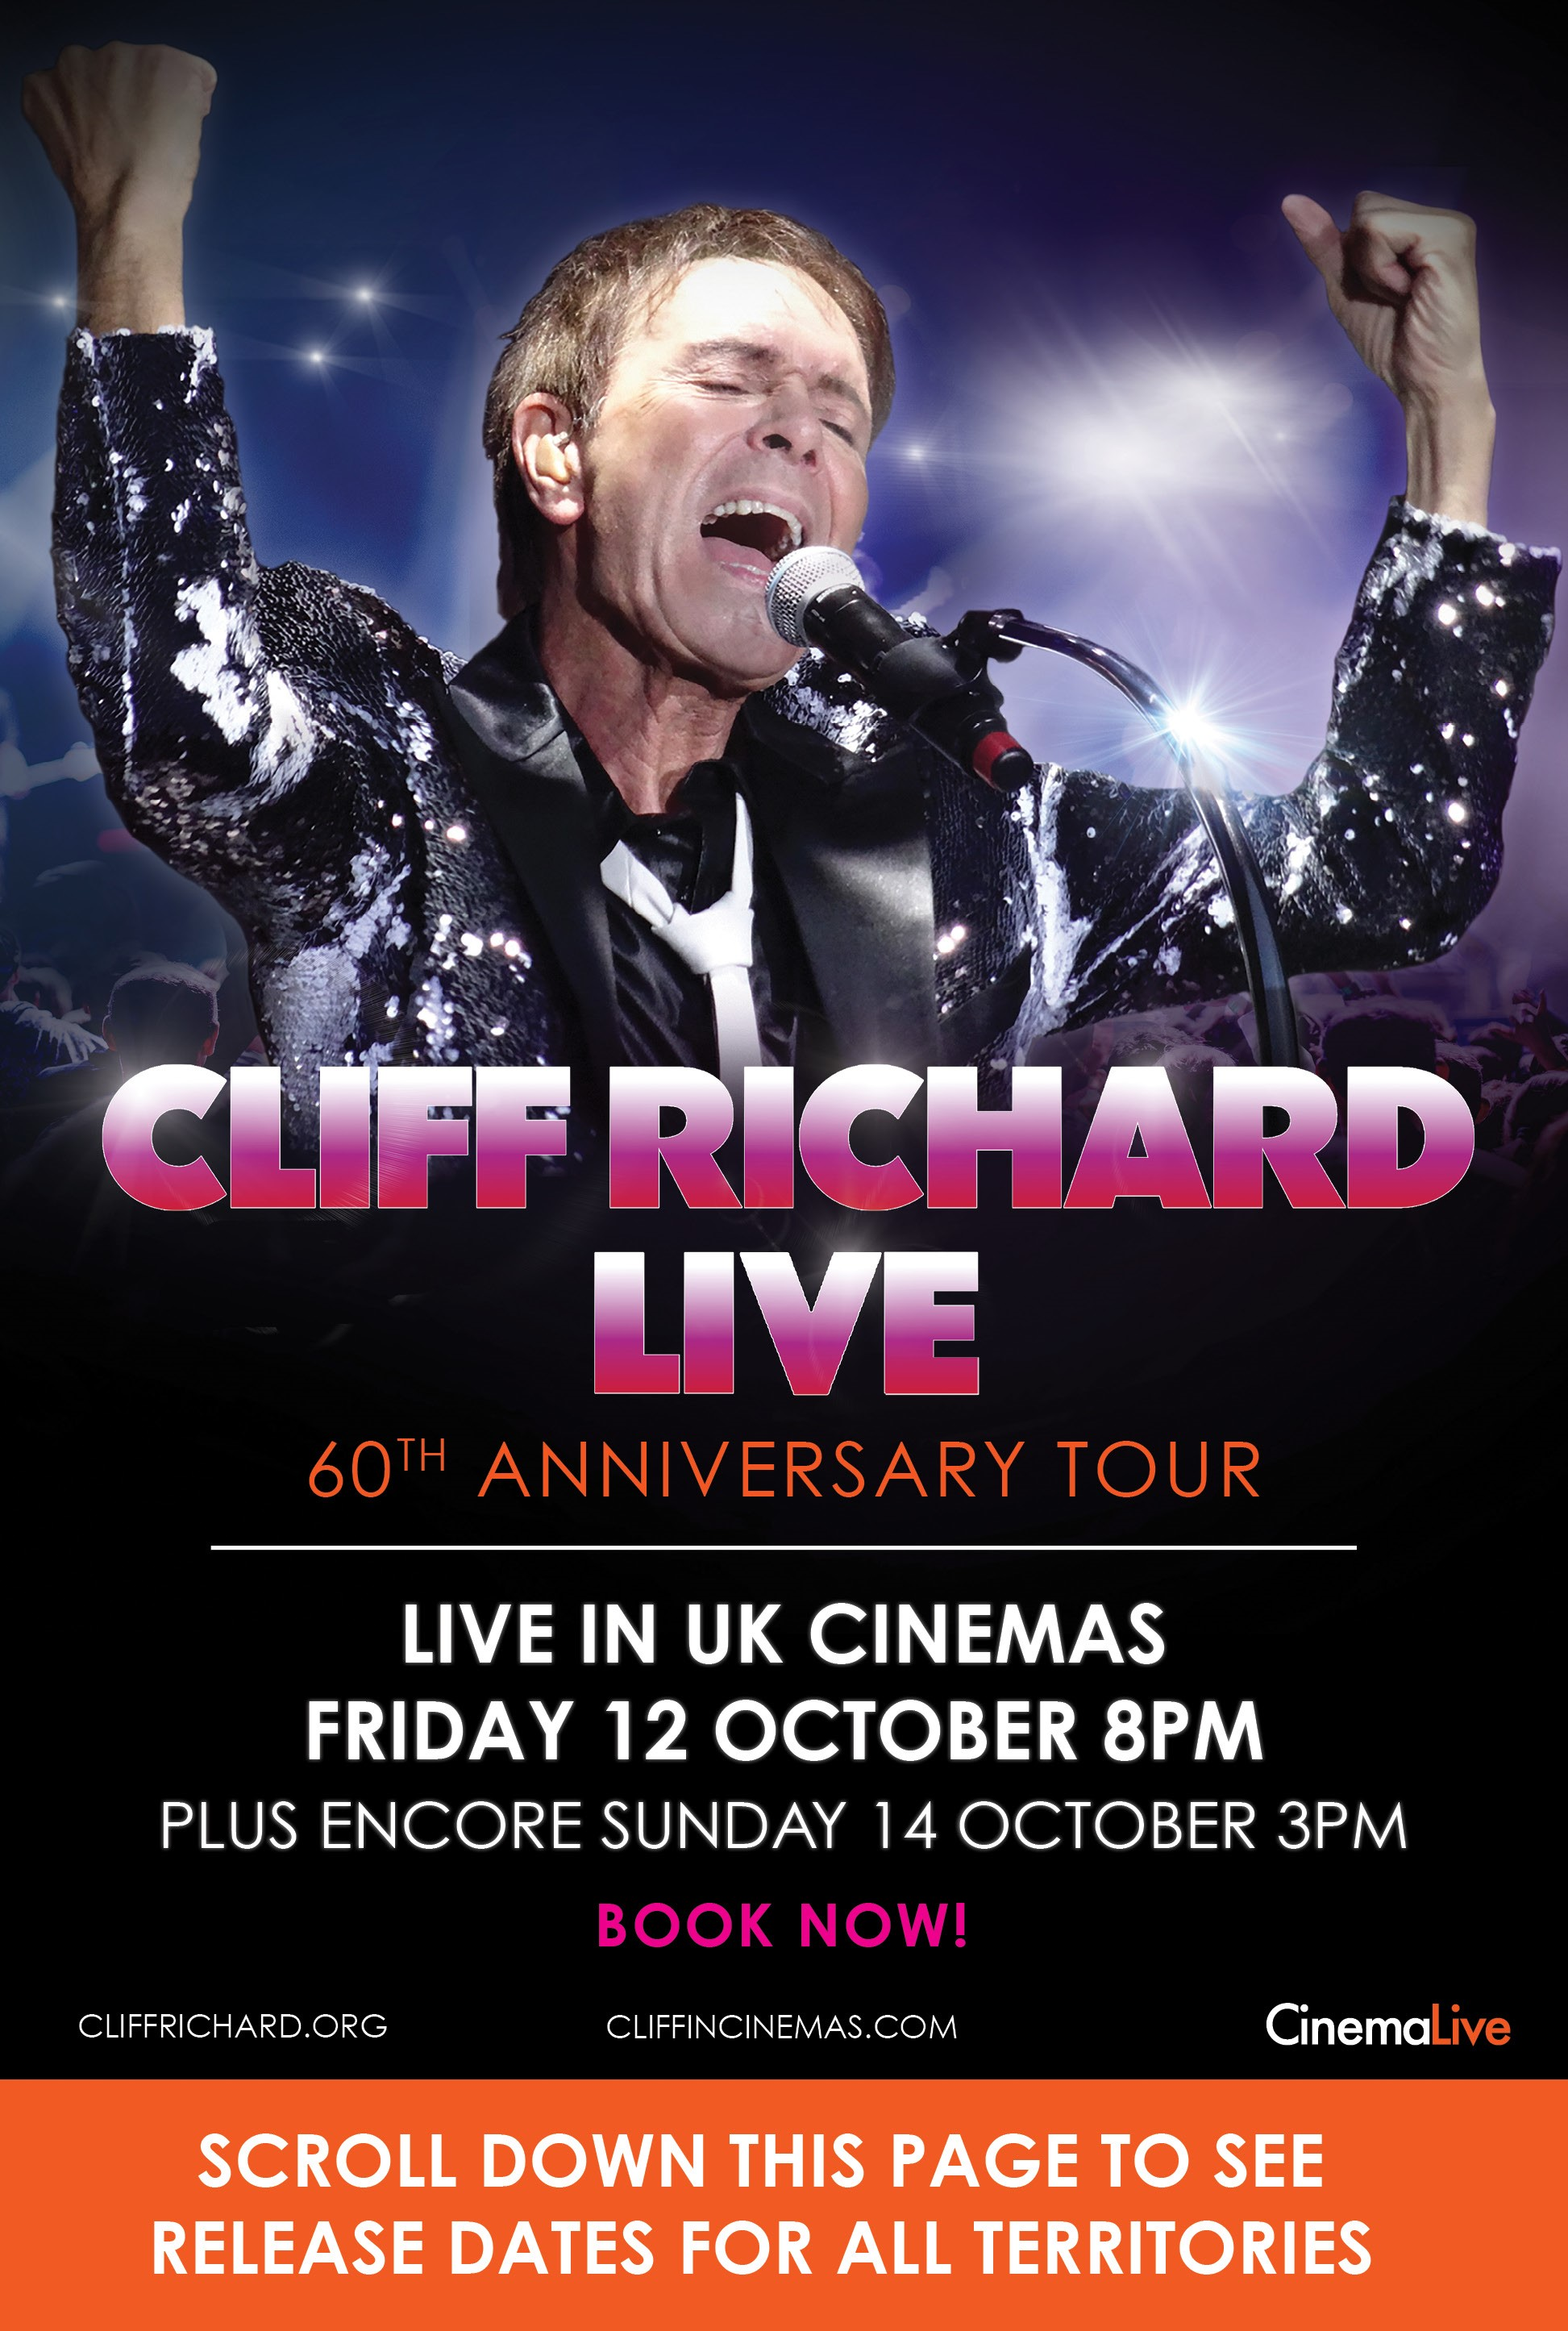 Cliff Richard Live: 60th Anniversary Tour cover